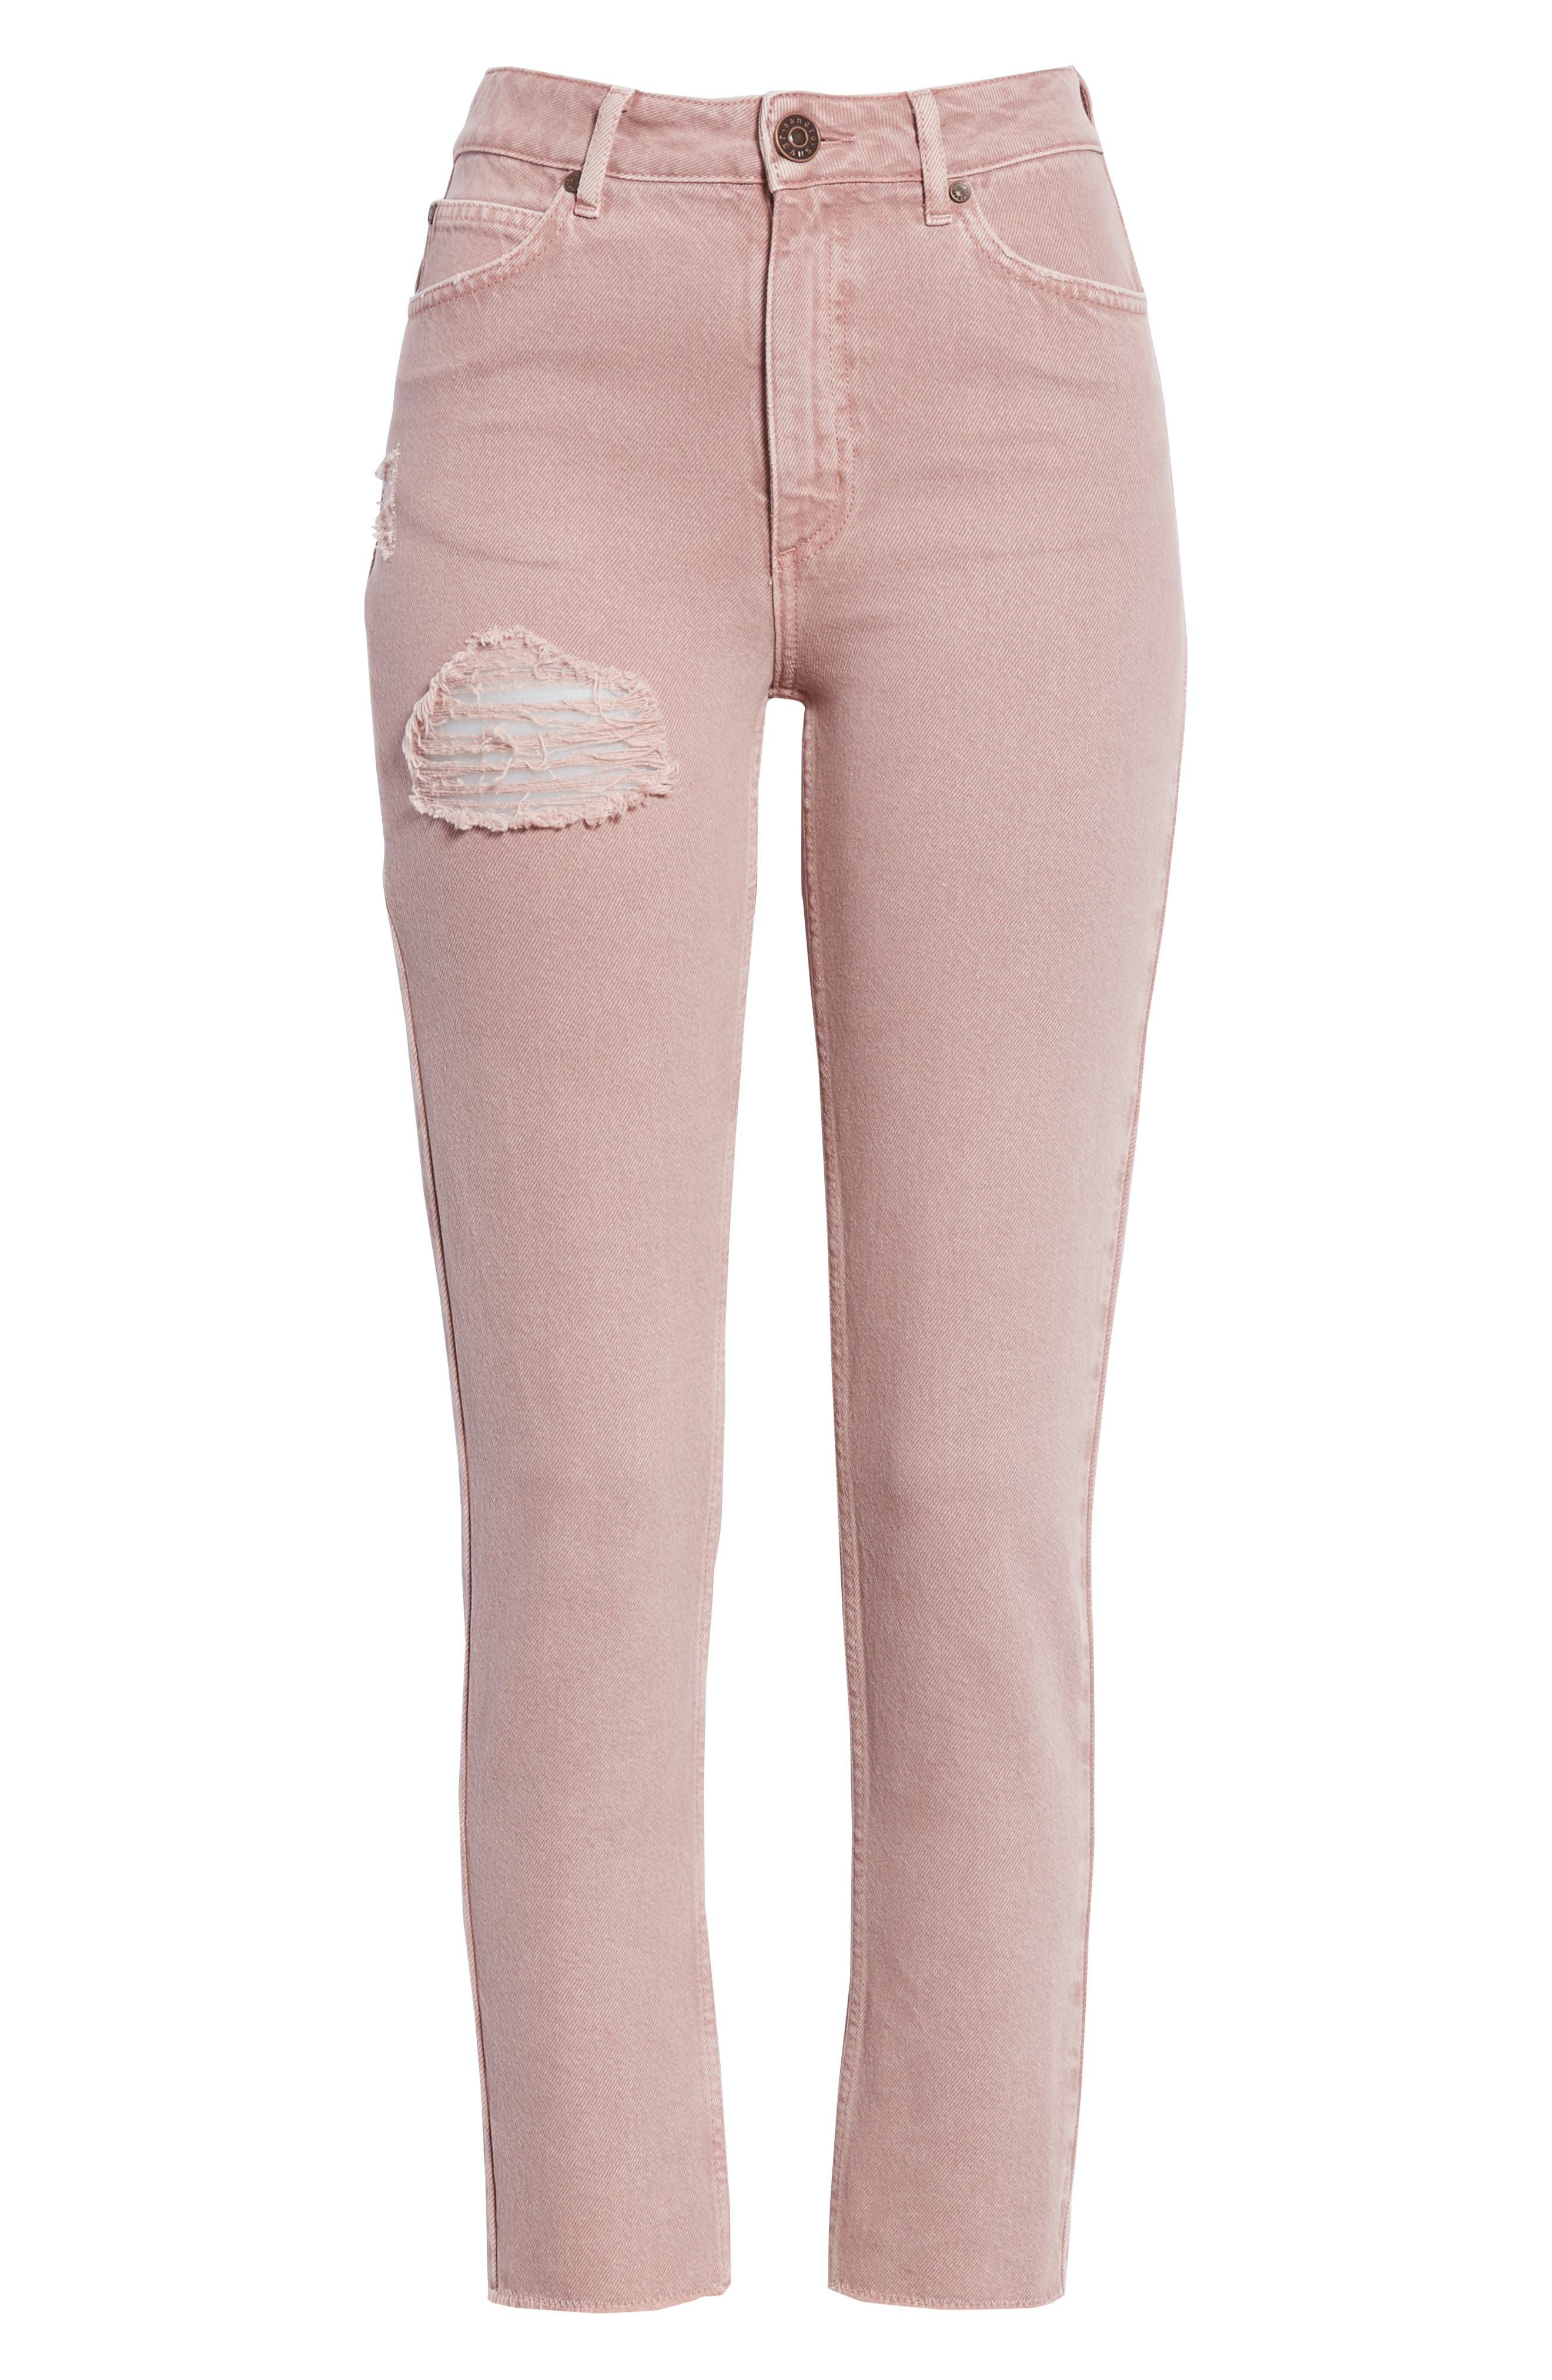 Ripped Raw Edge Jeans,                             Alternate thumbnail 6, color,                             Rose